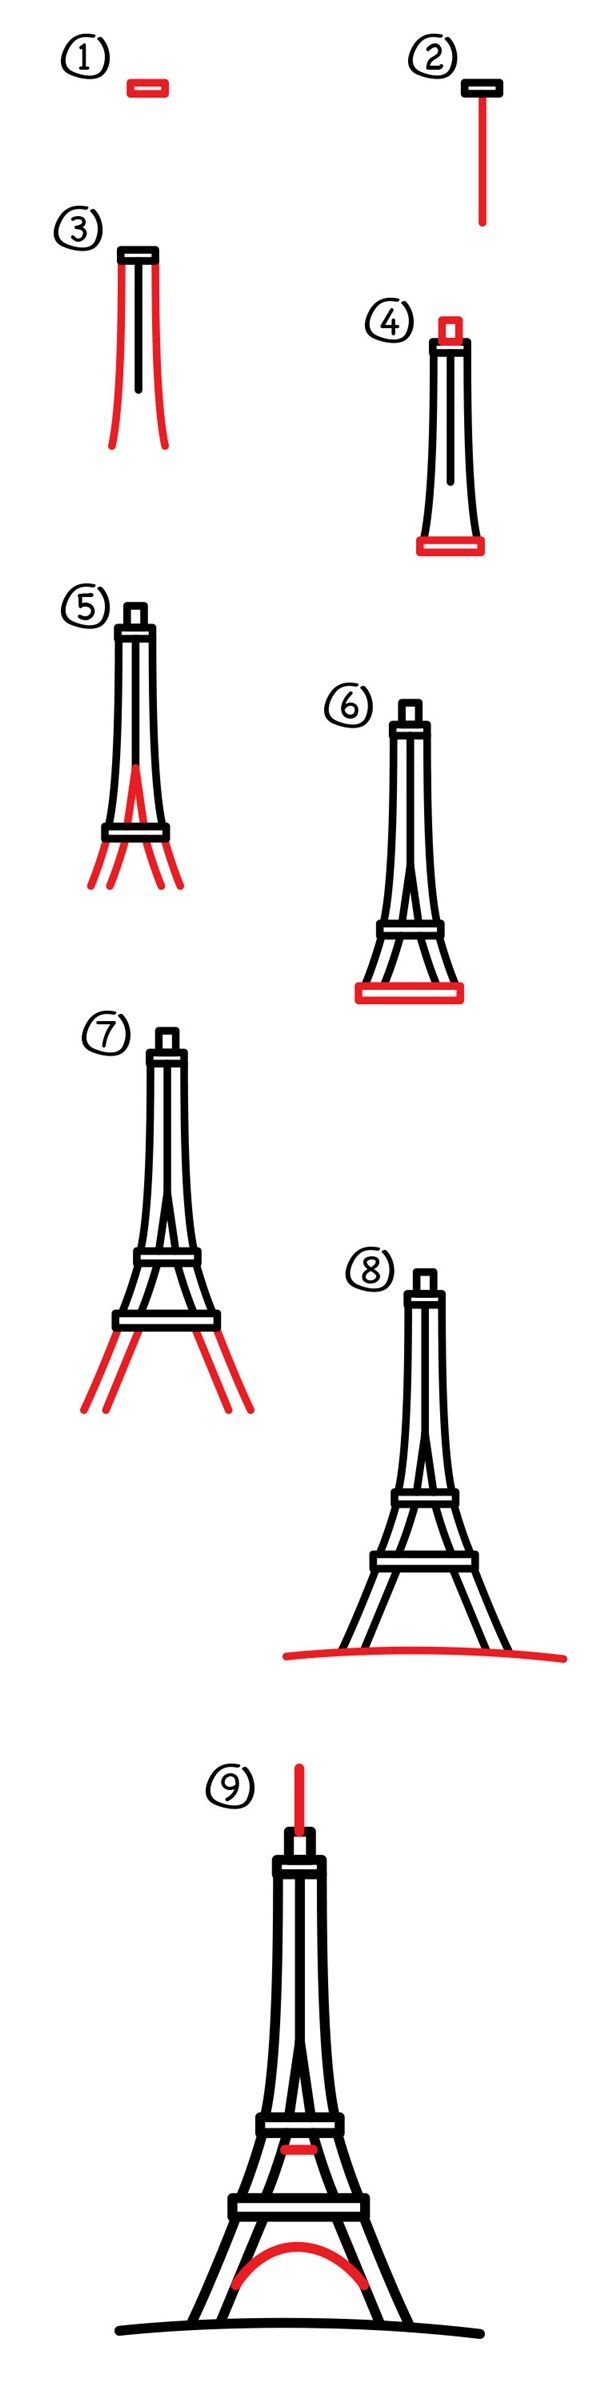 Your Eiffel tower drawing and sketches can be shared to social media or you can frame them and gift them to the people you want to.